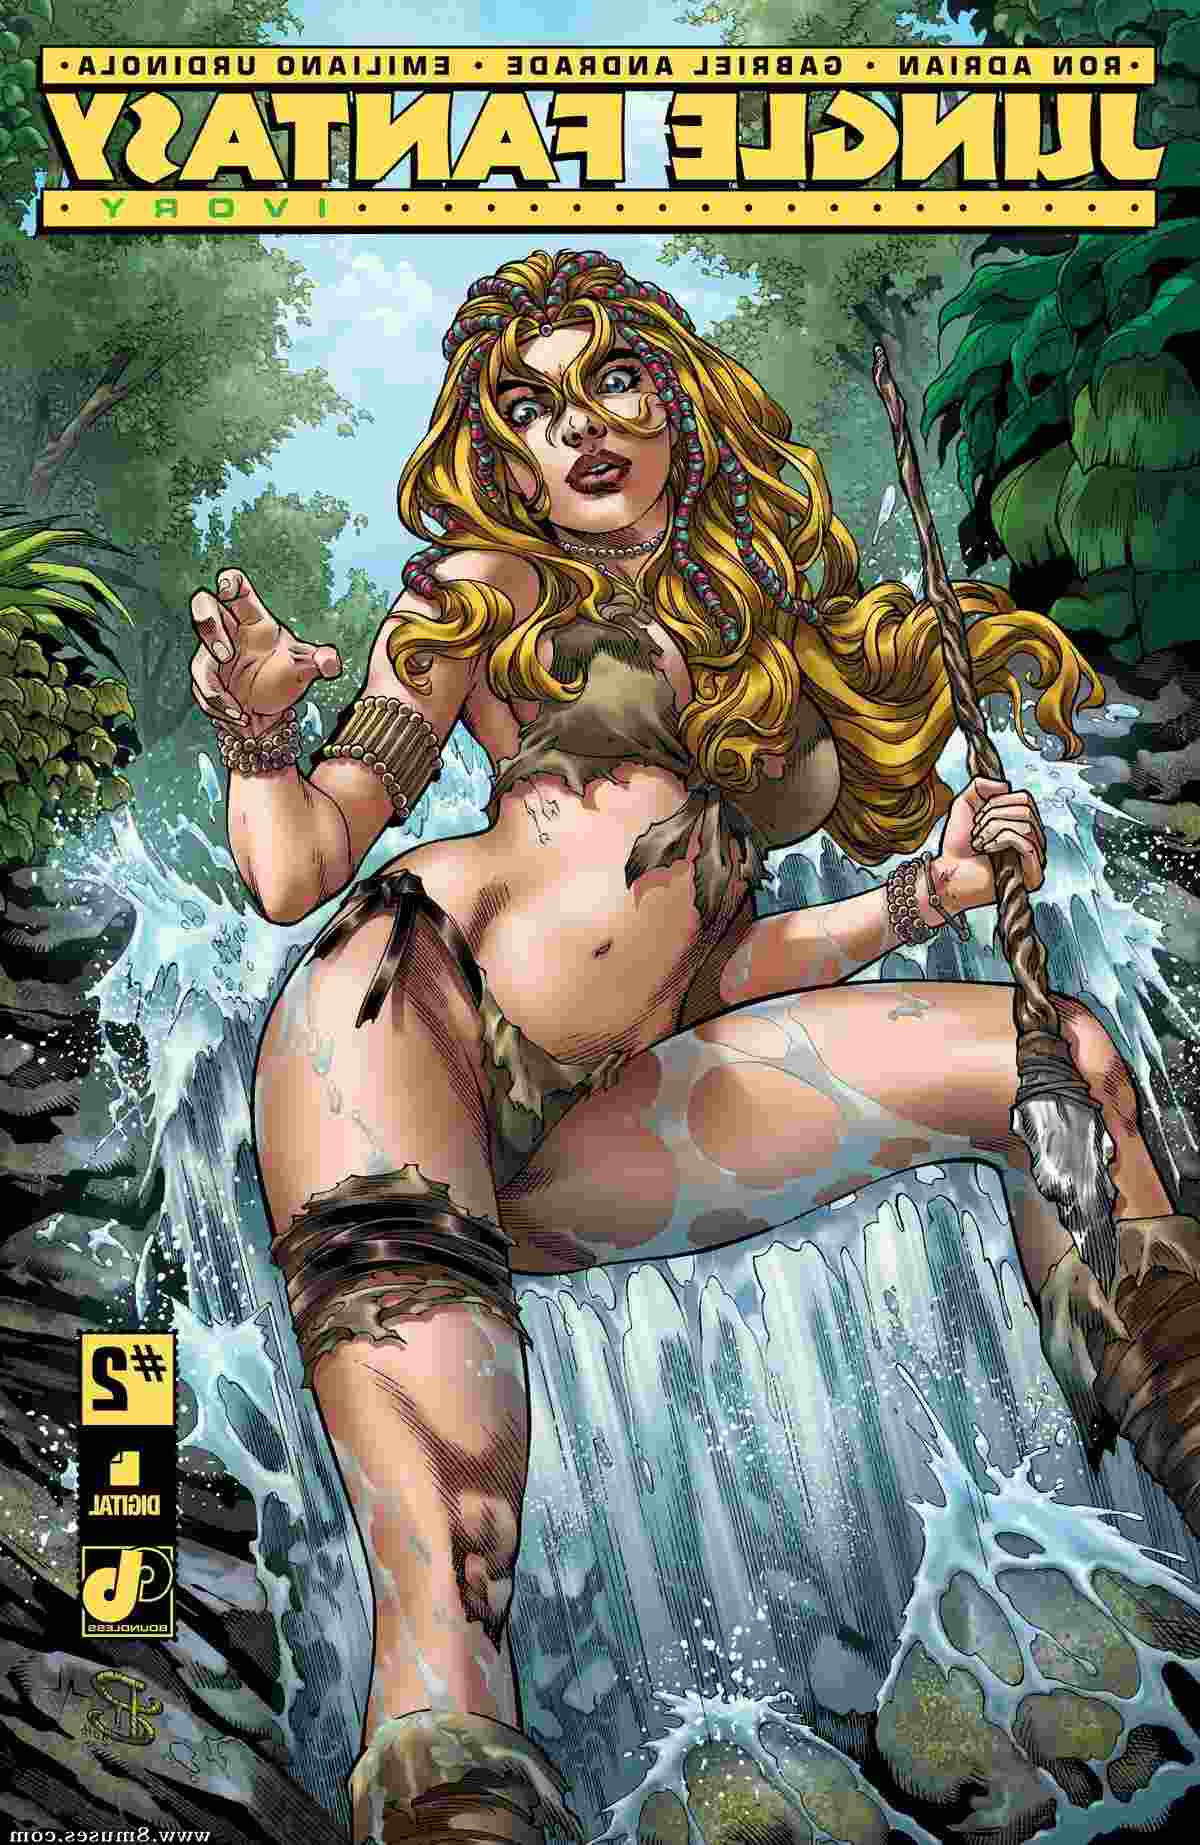 Various-Authors/Boundless-Comics/Jungle-Fantasy-Ivory Jungle_Fantasy_-_Ivory__8muses_-_Sex_and_Porn_Comics_2.jpg